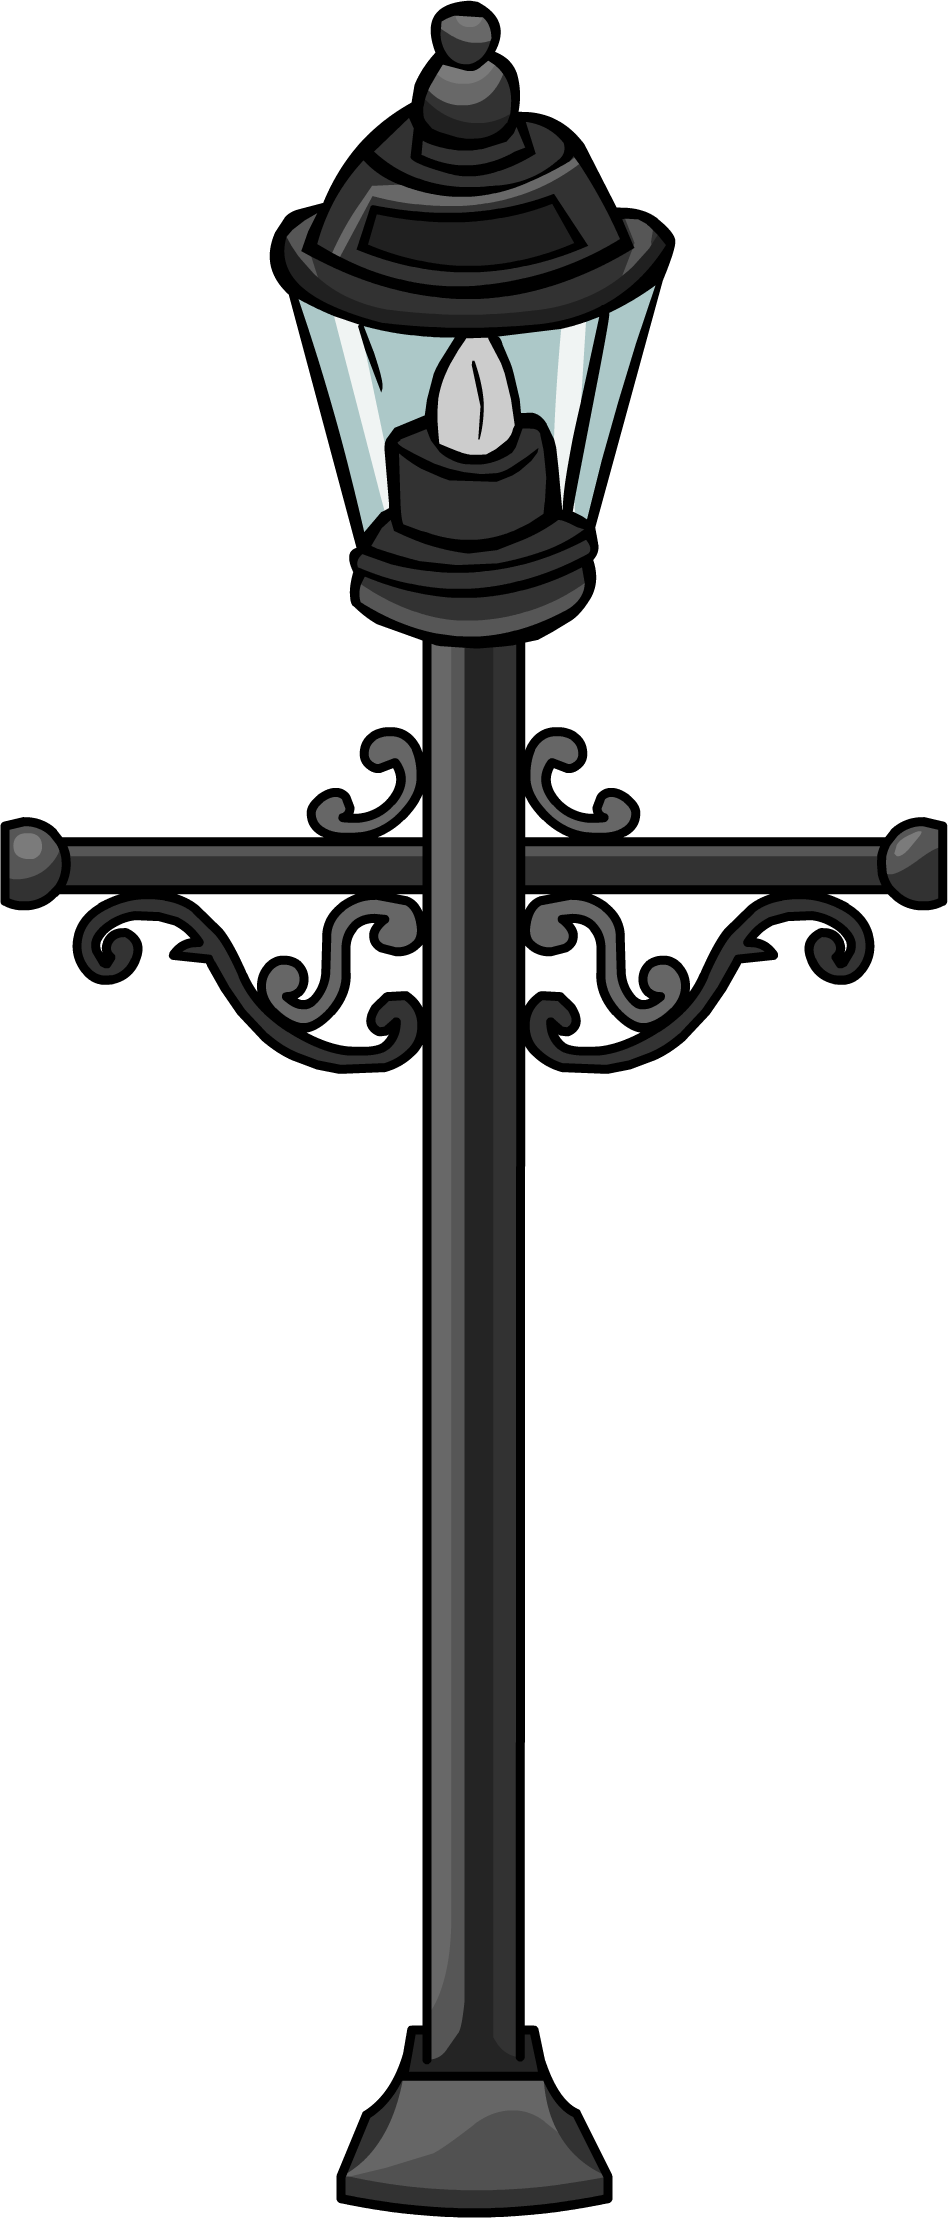 Beautiful Low Voltage Lamp Post